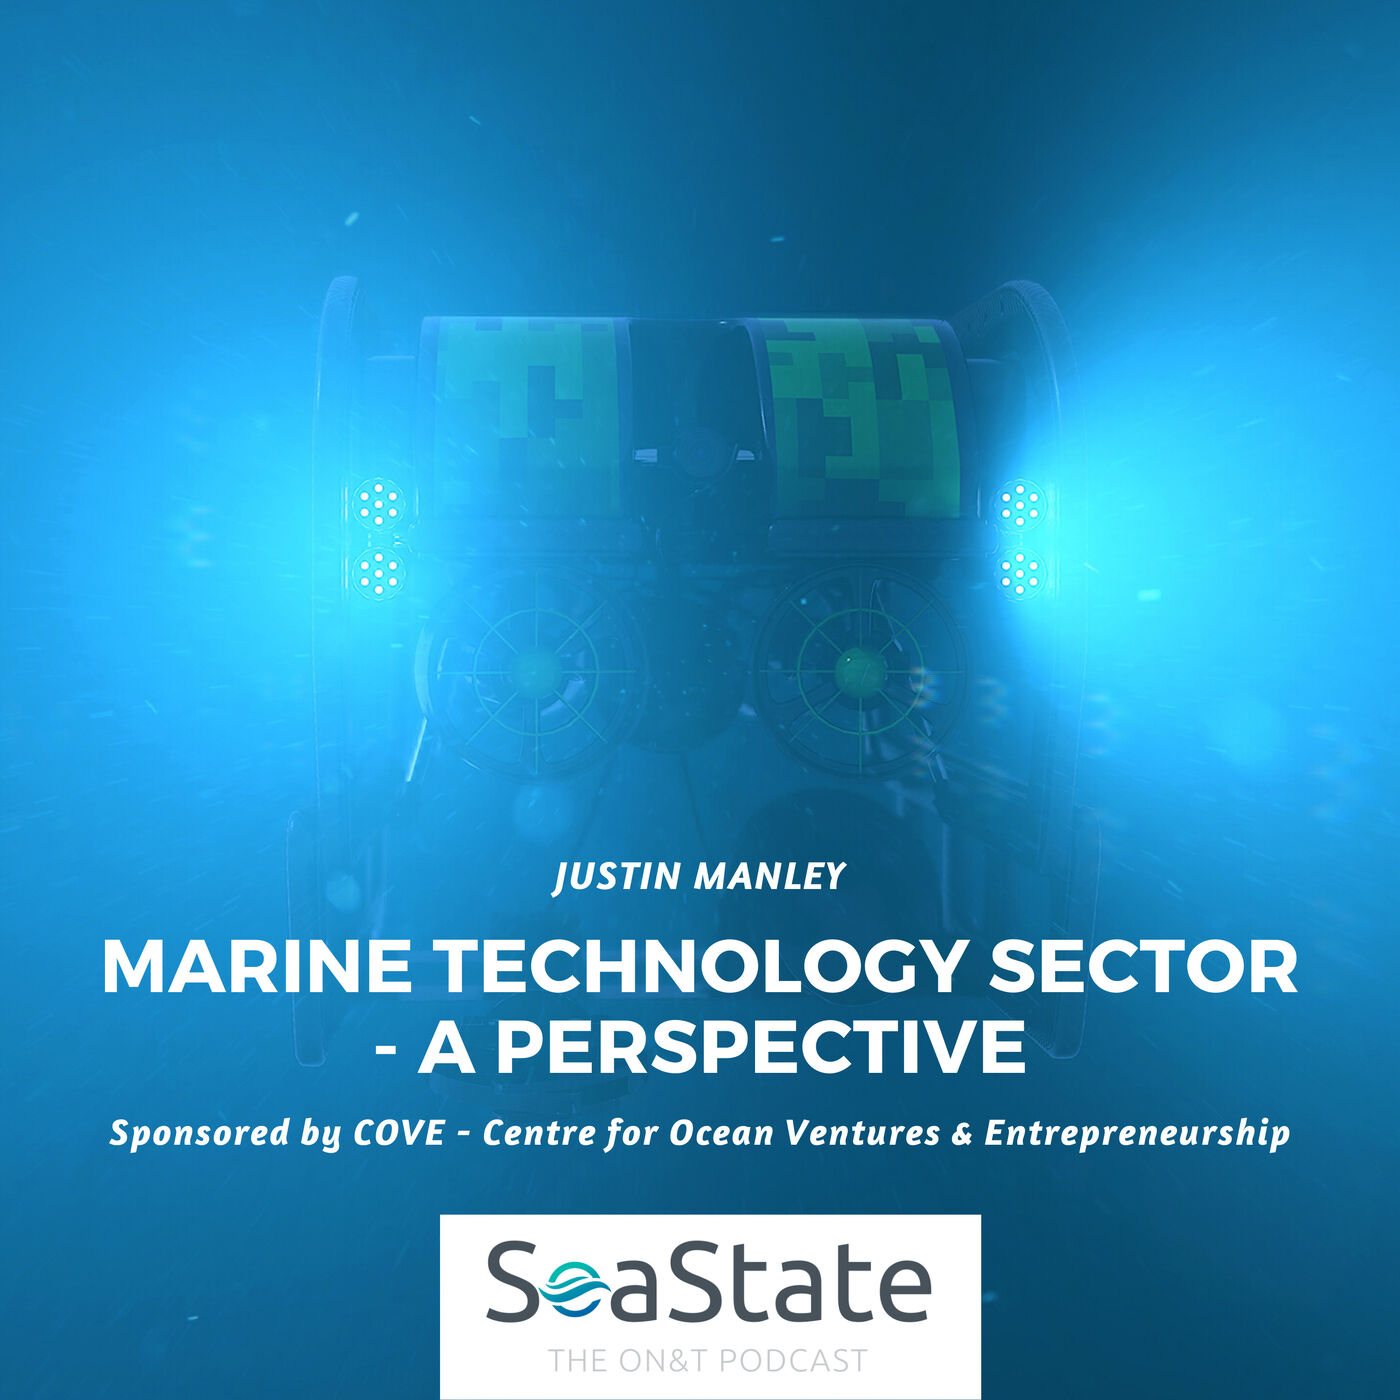 Marine Technology Sector - A Perspective